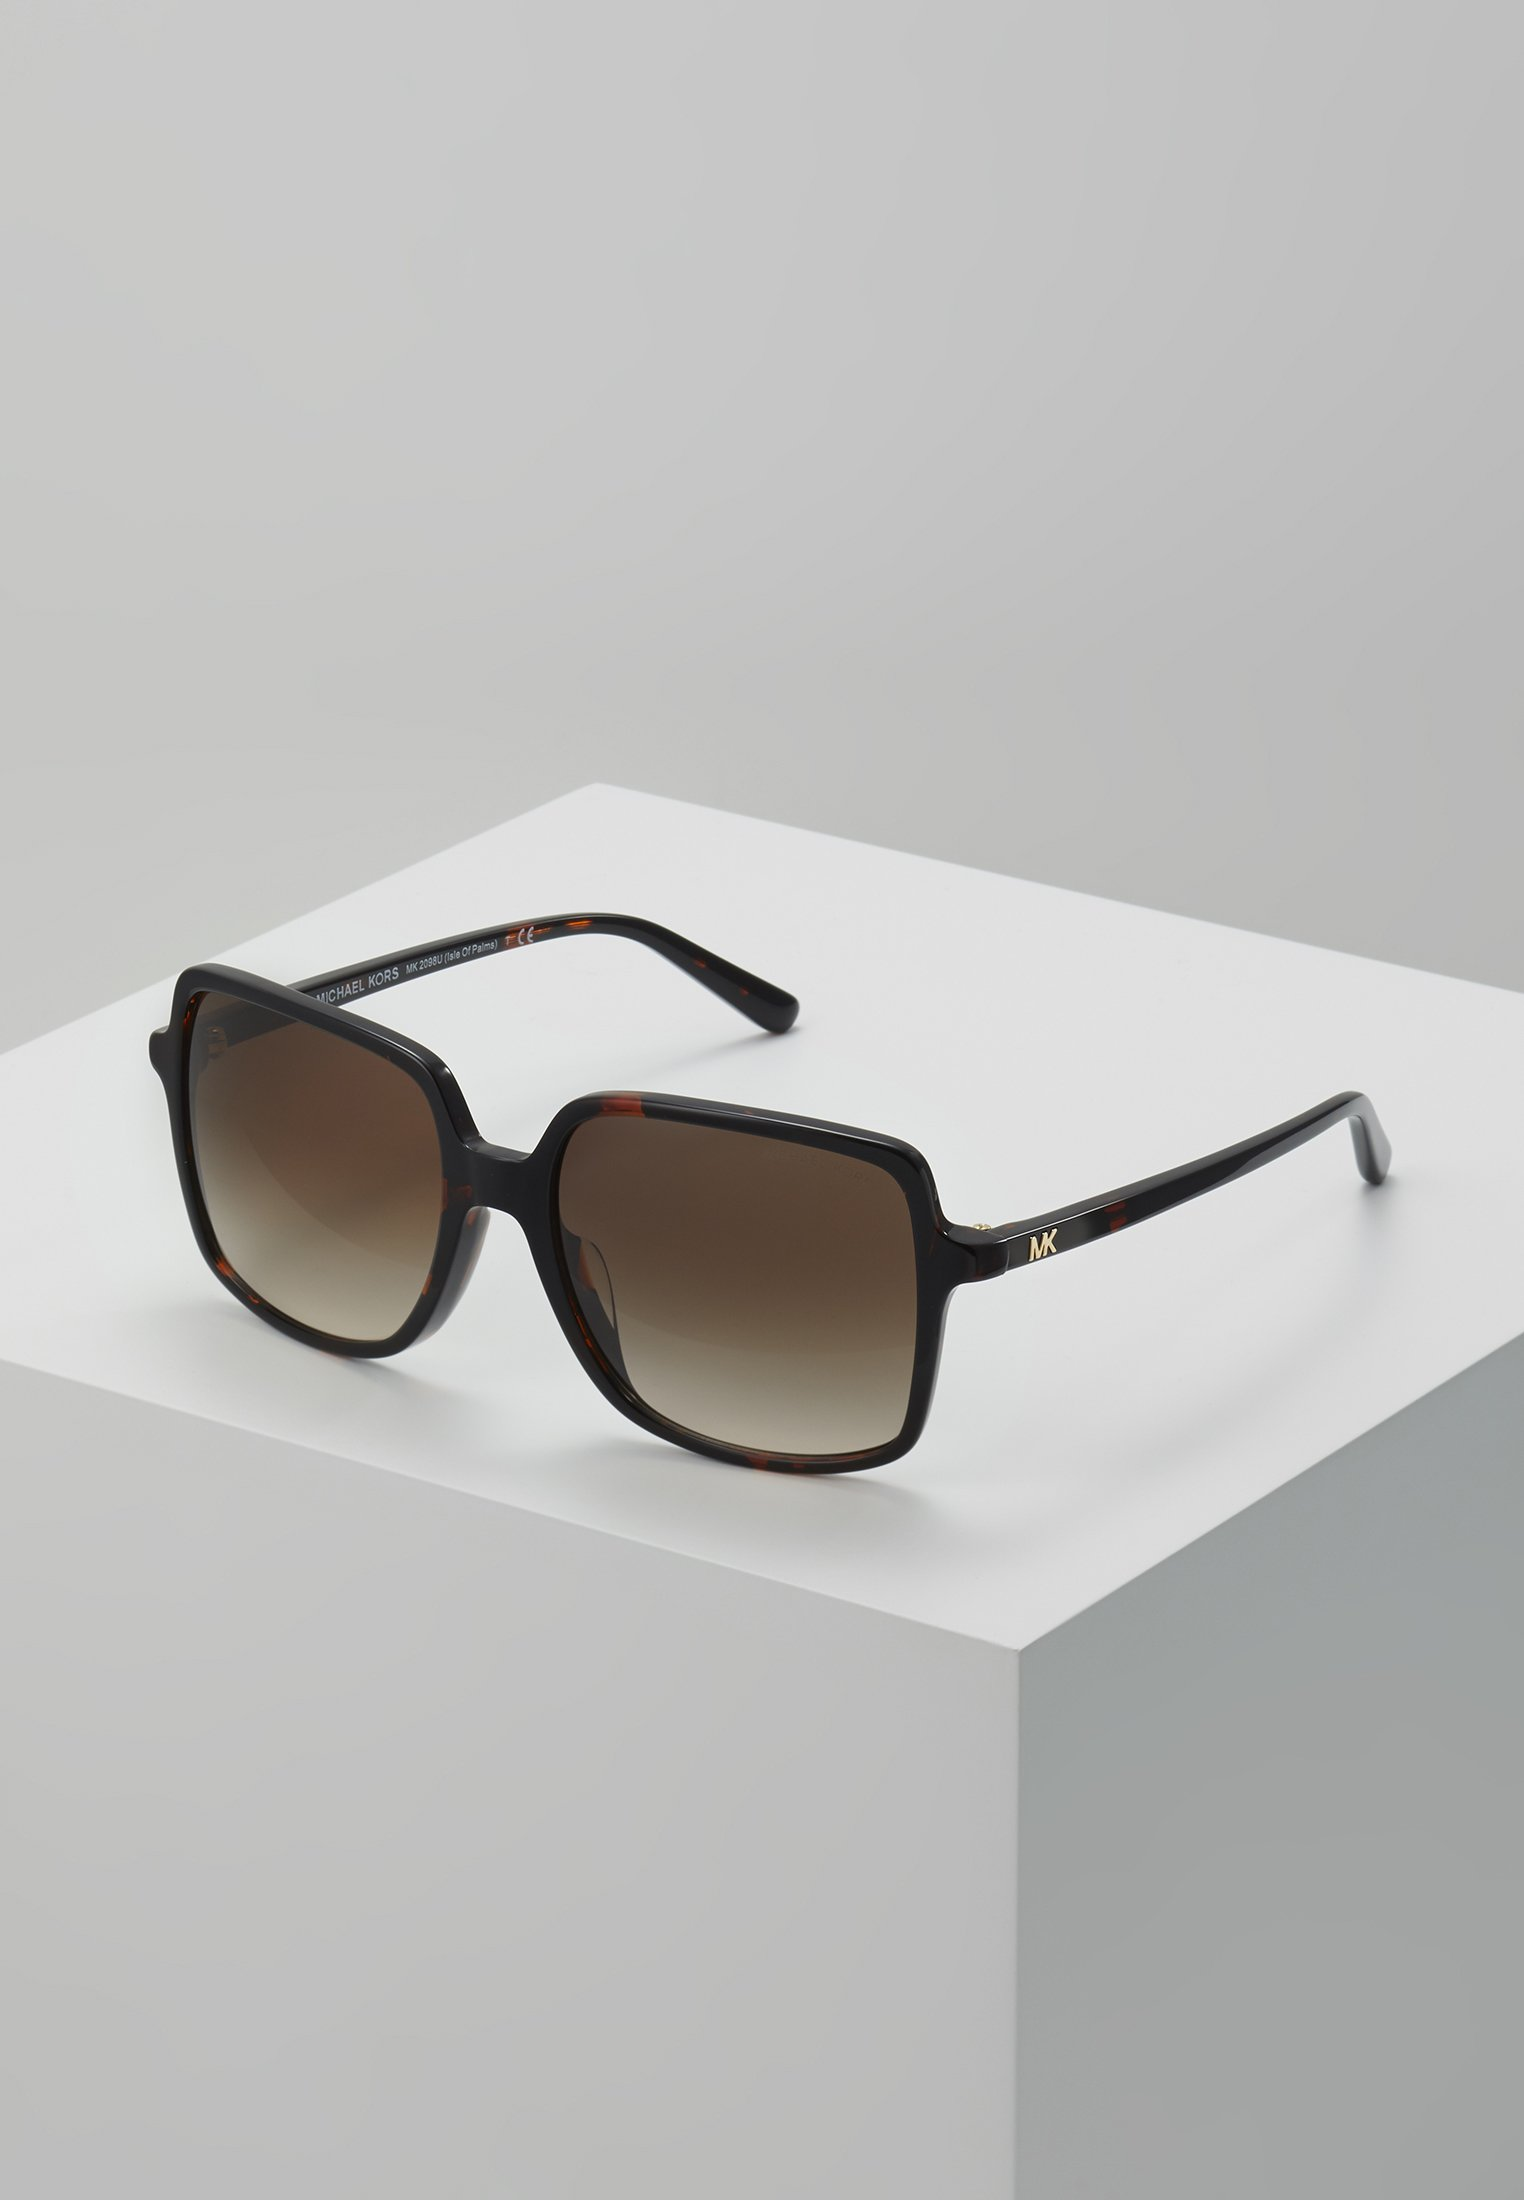 Michael Kors Sunglasses - tort